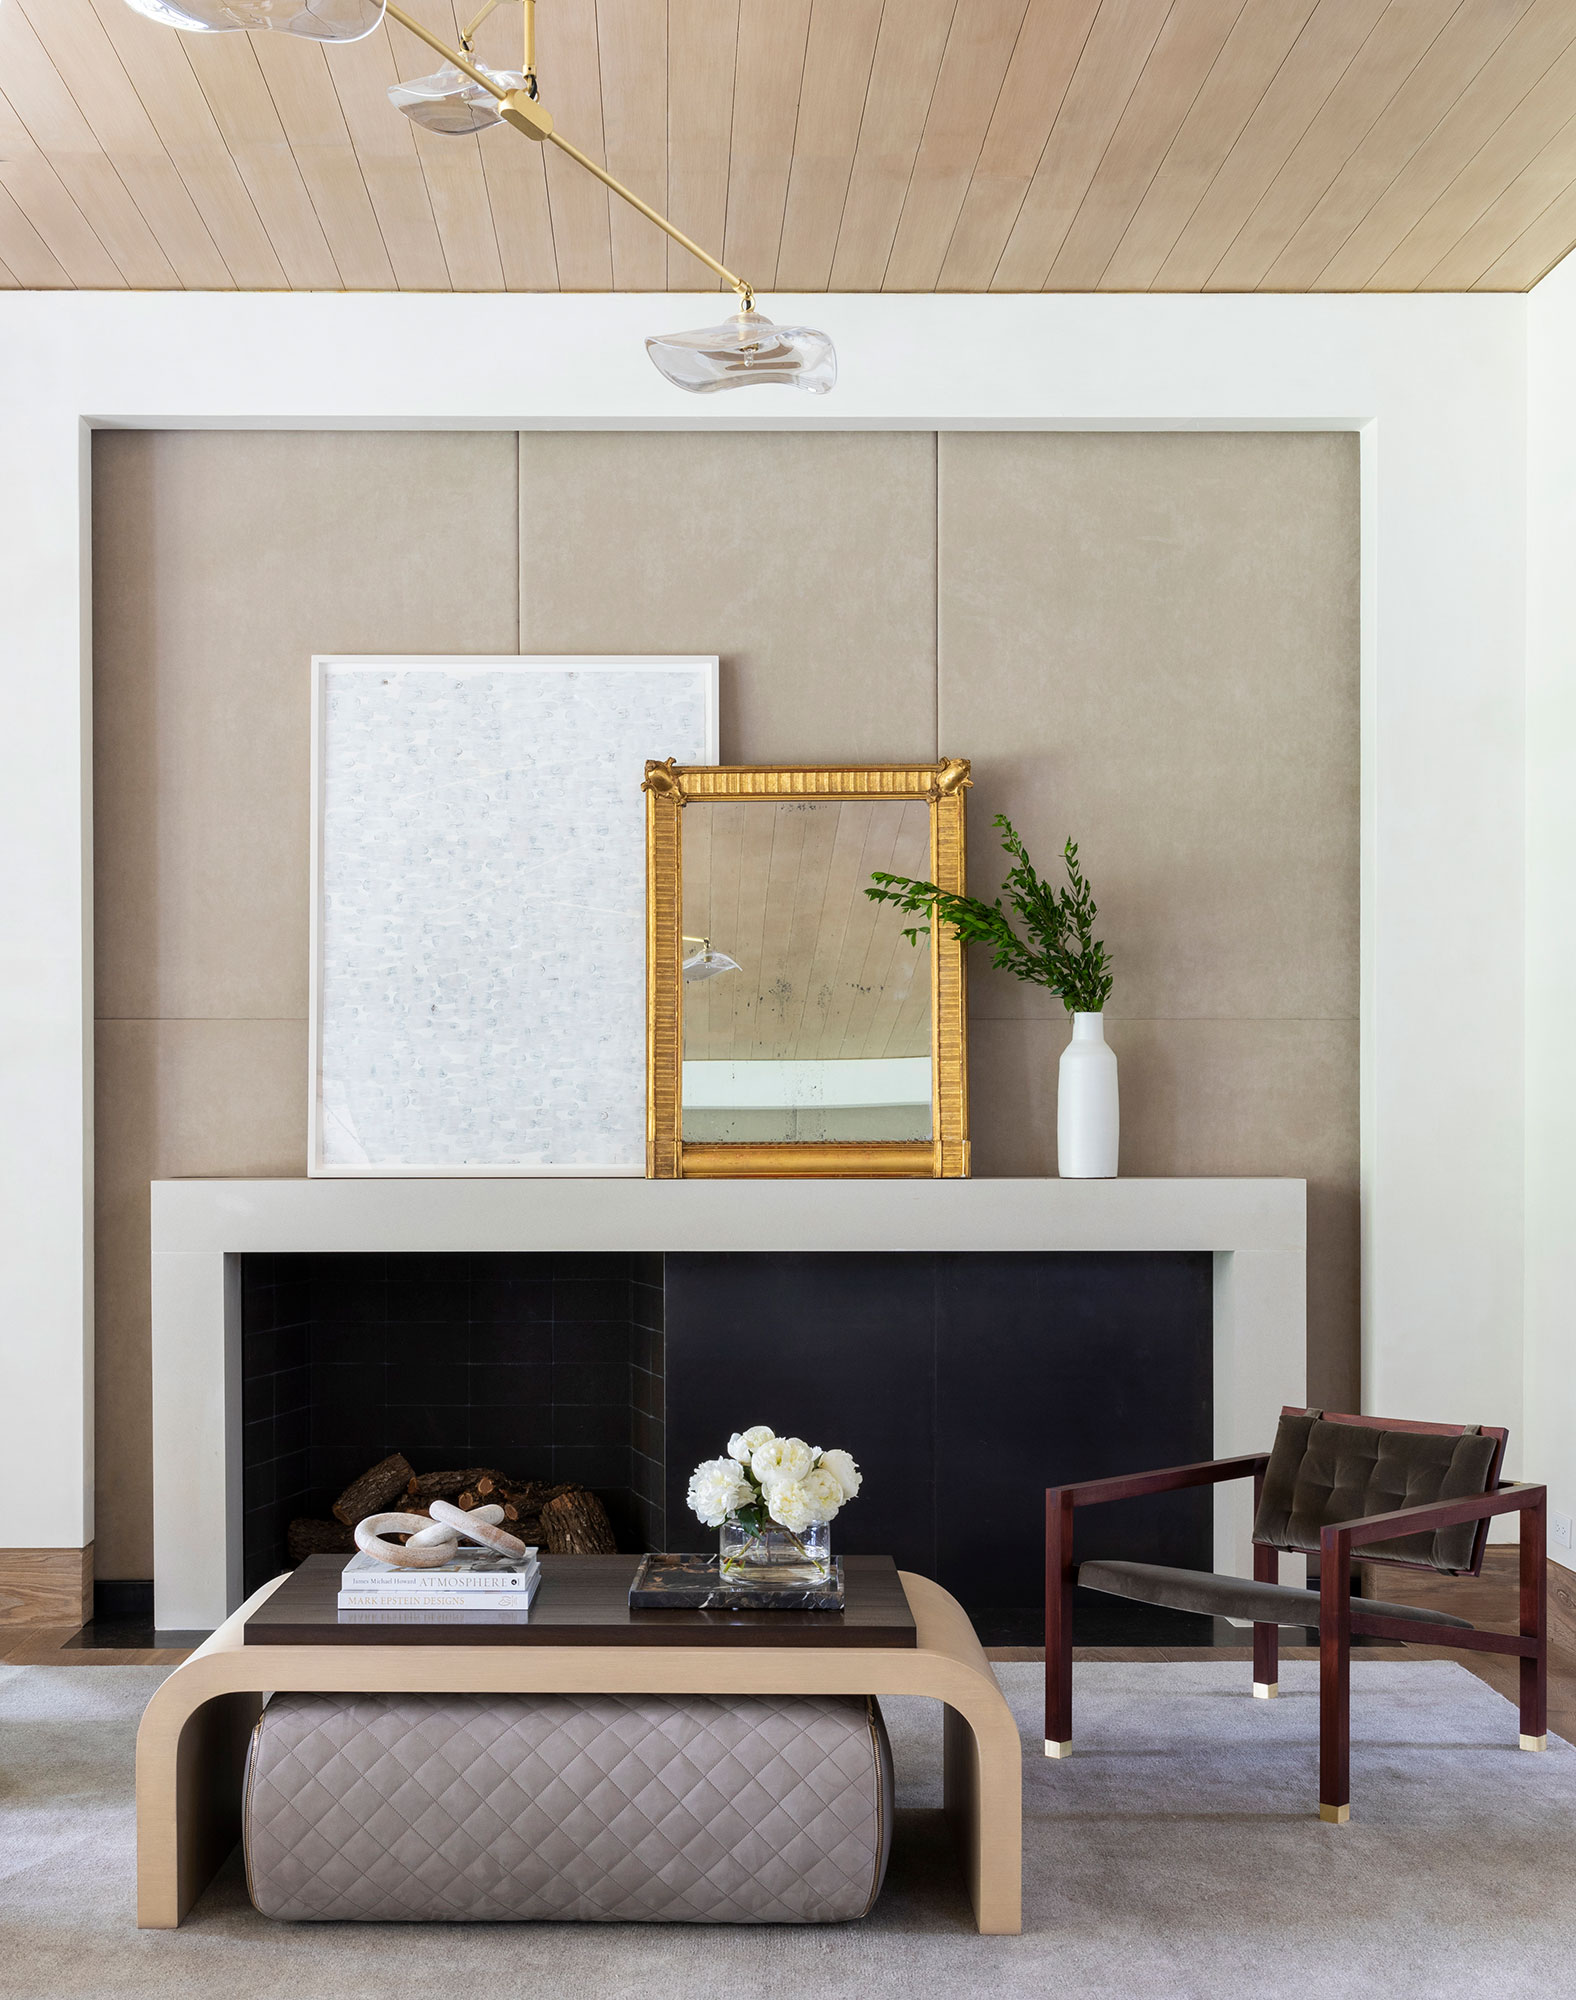 Fireplace Interiors Photography - Julie Soefer Photography